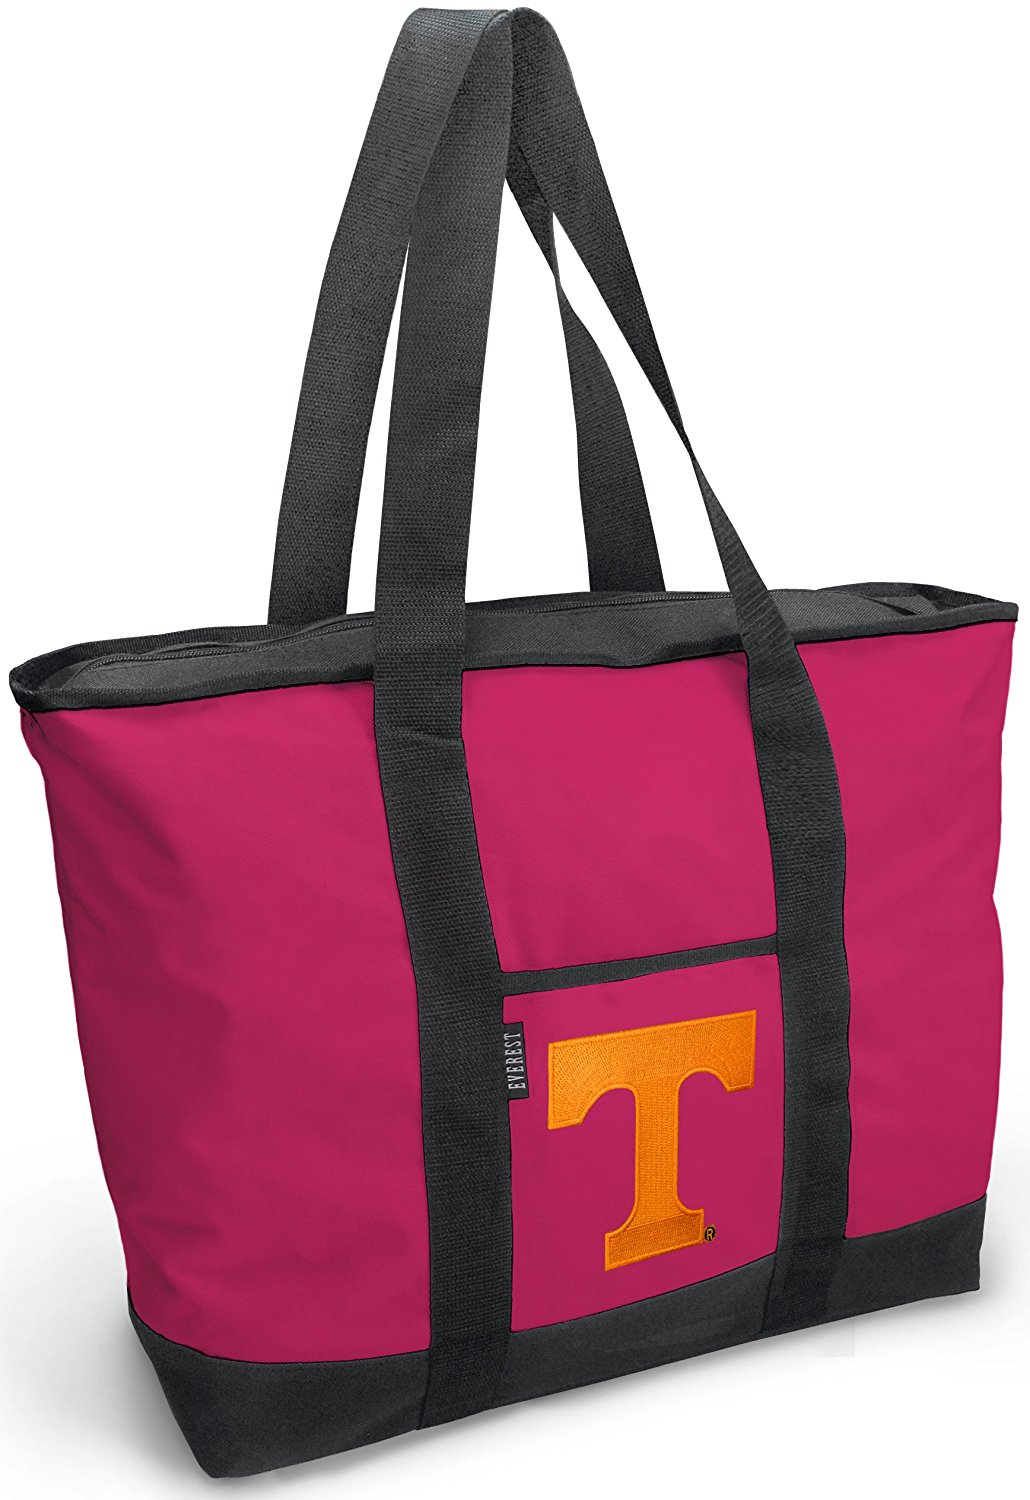 Cute University of Tennessee Tote Bag Tennessee Vols Totes for Women